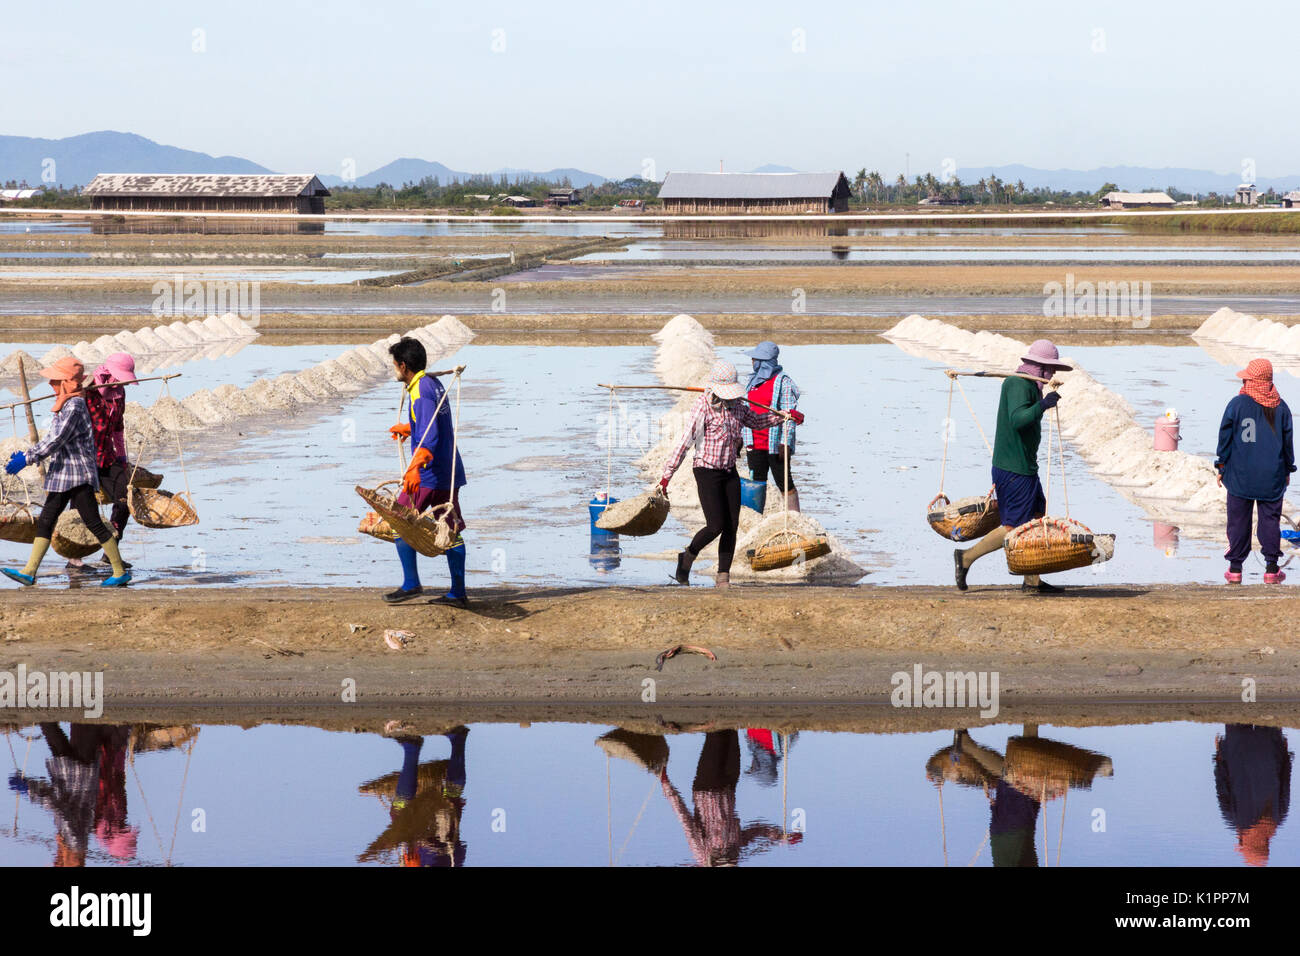 Workers gathering sea salt from the salt pans, Petchaburi province, Thailand - Stock Image